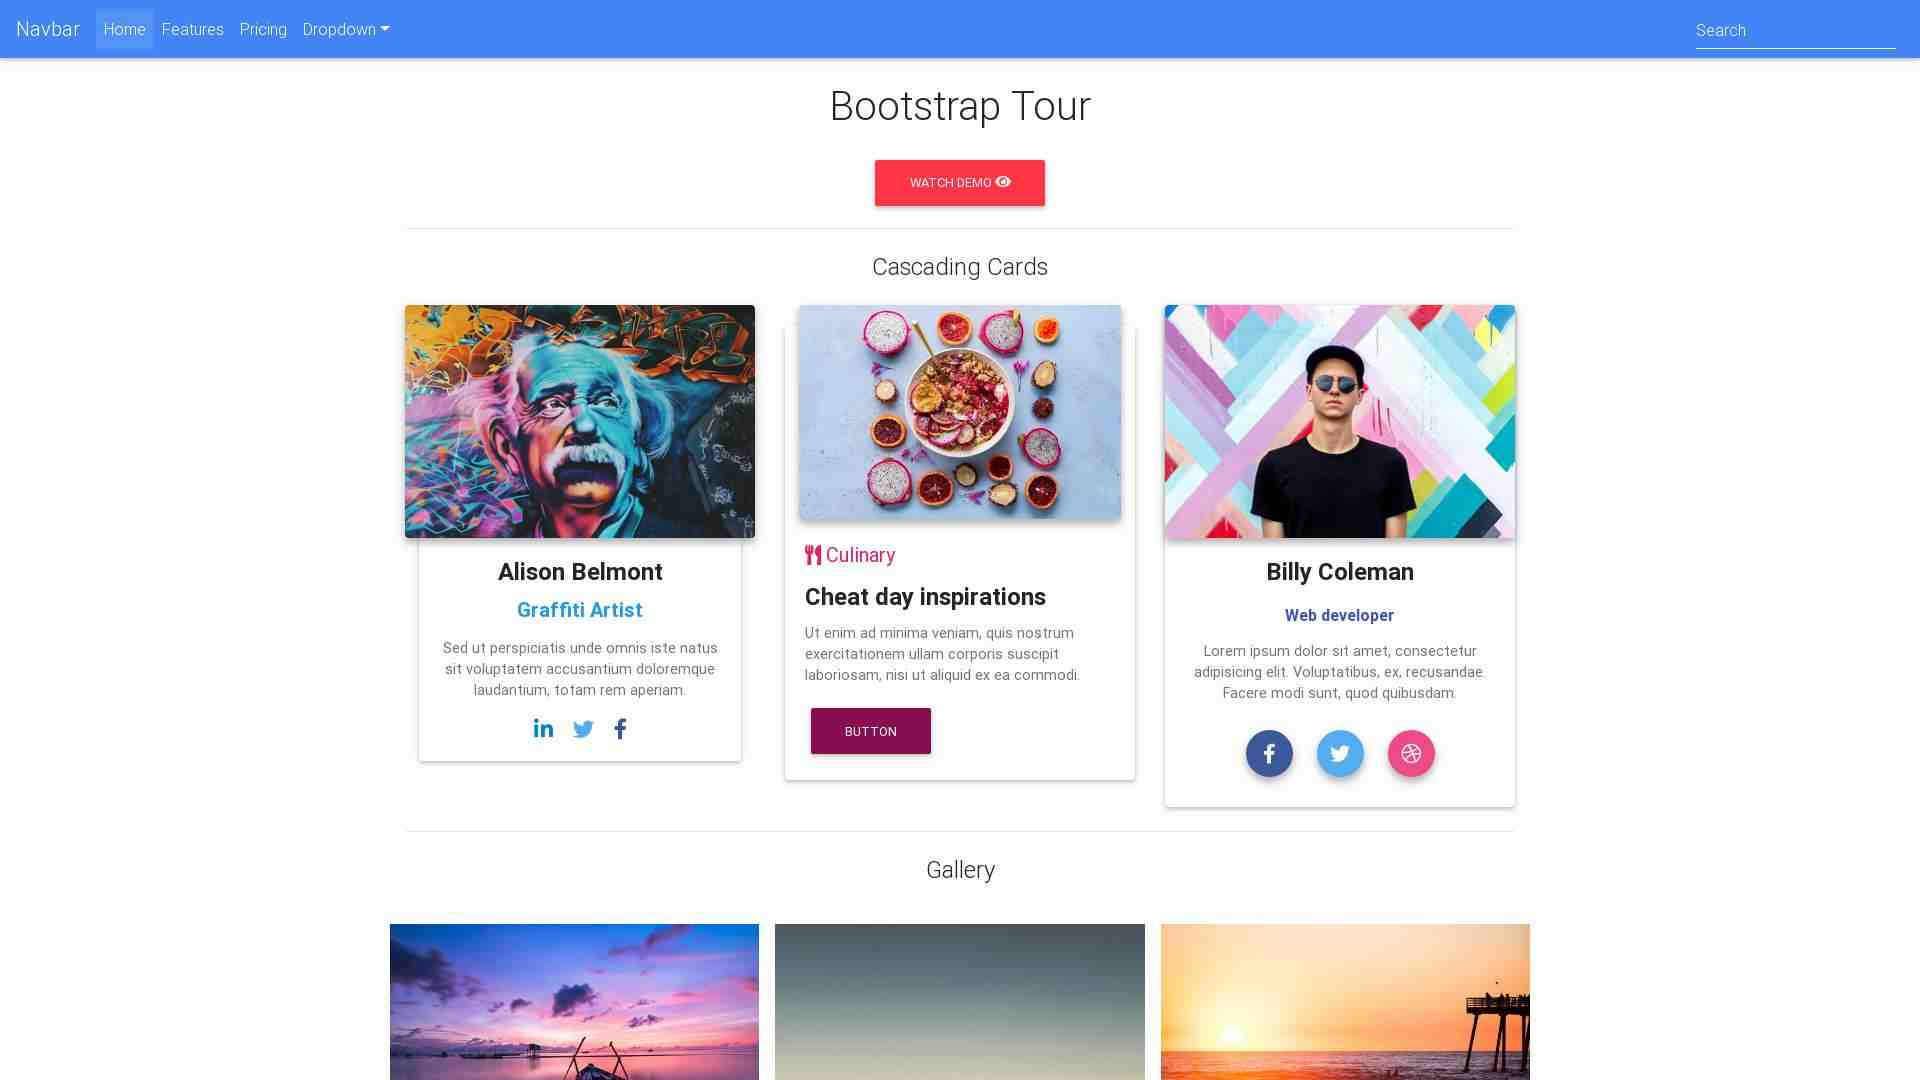 Forked from - Bootstrap Tour